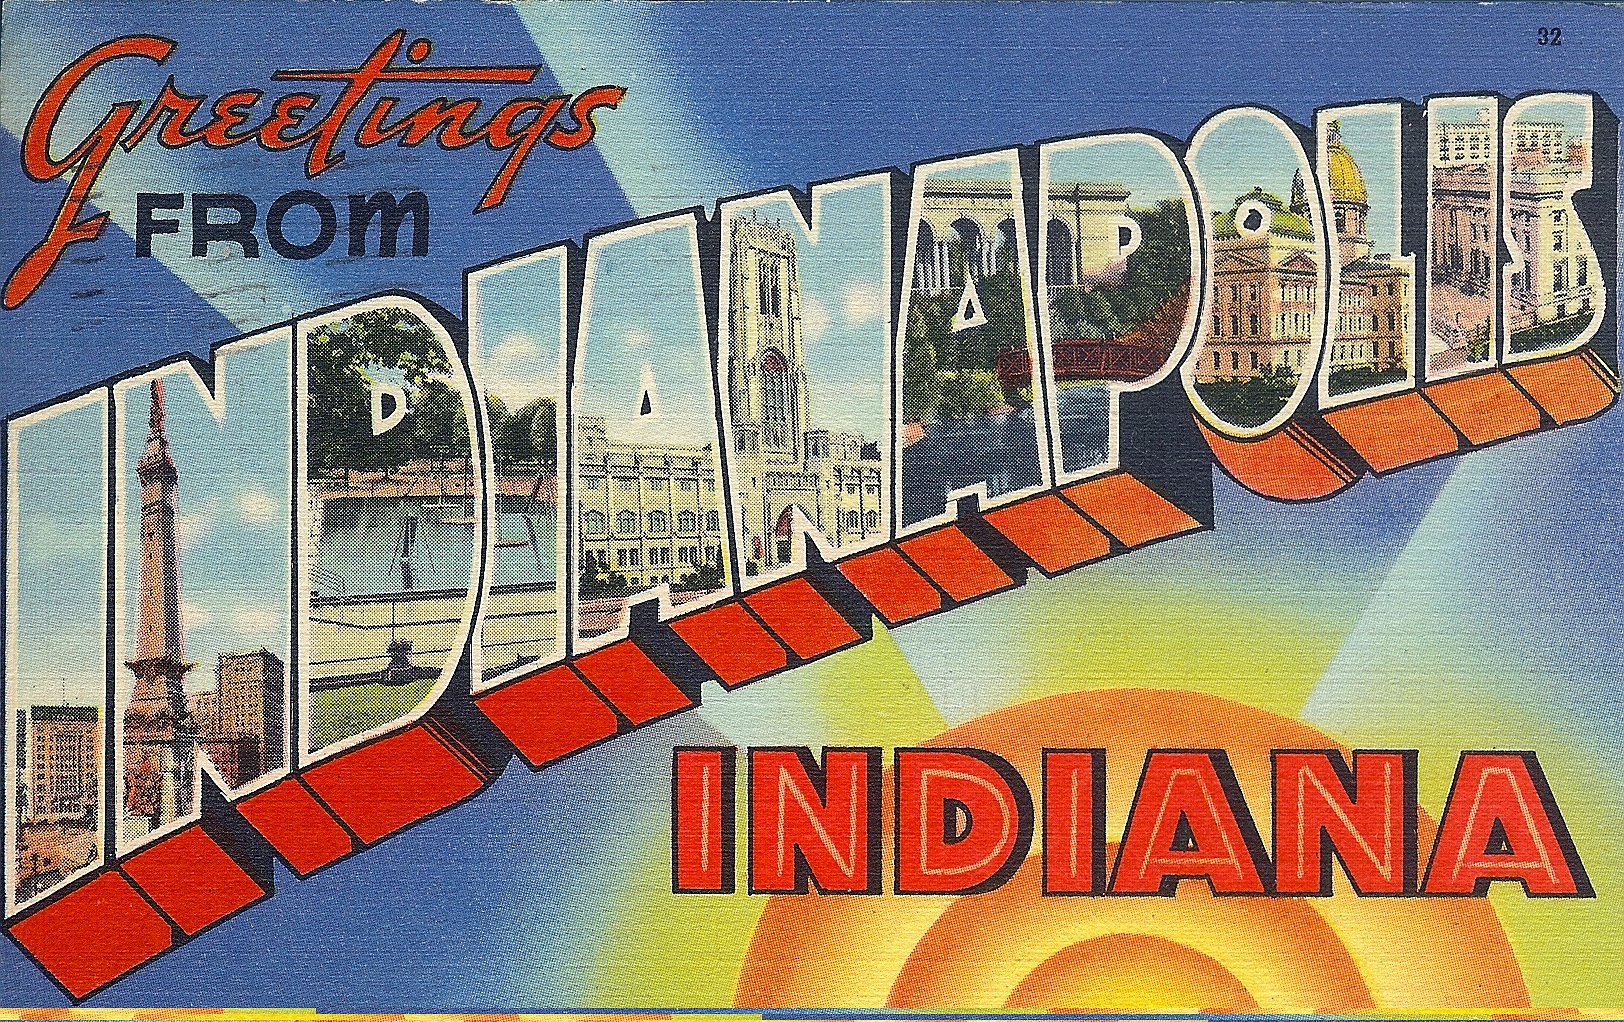 Penny Post: Greetings from Indianapolis, Indiana